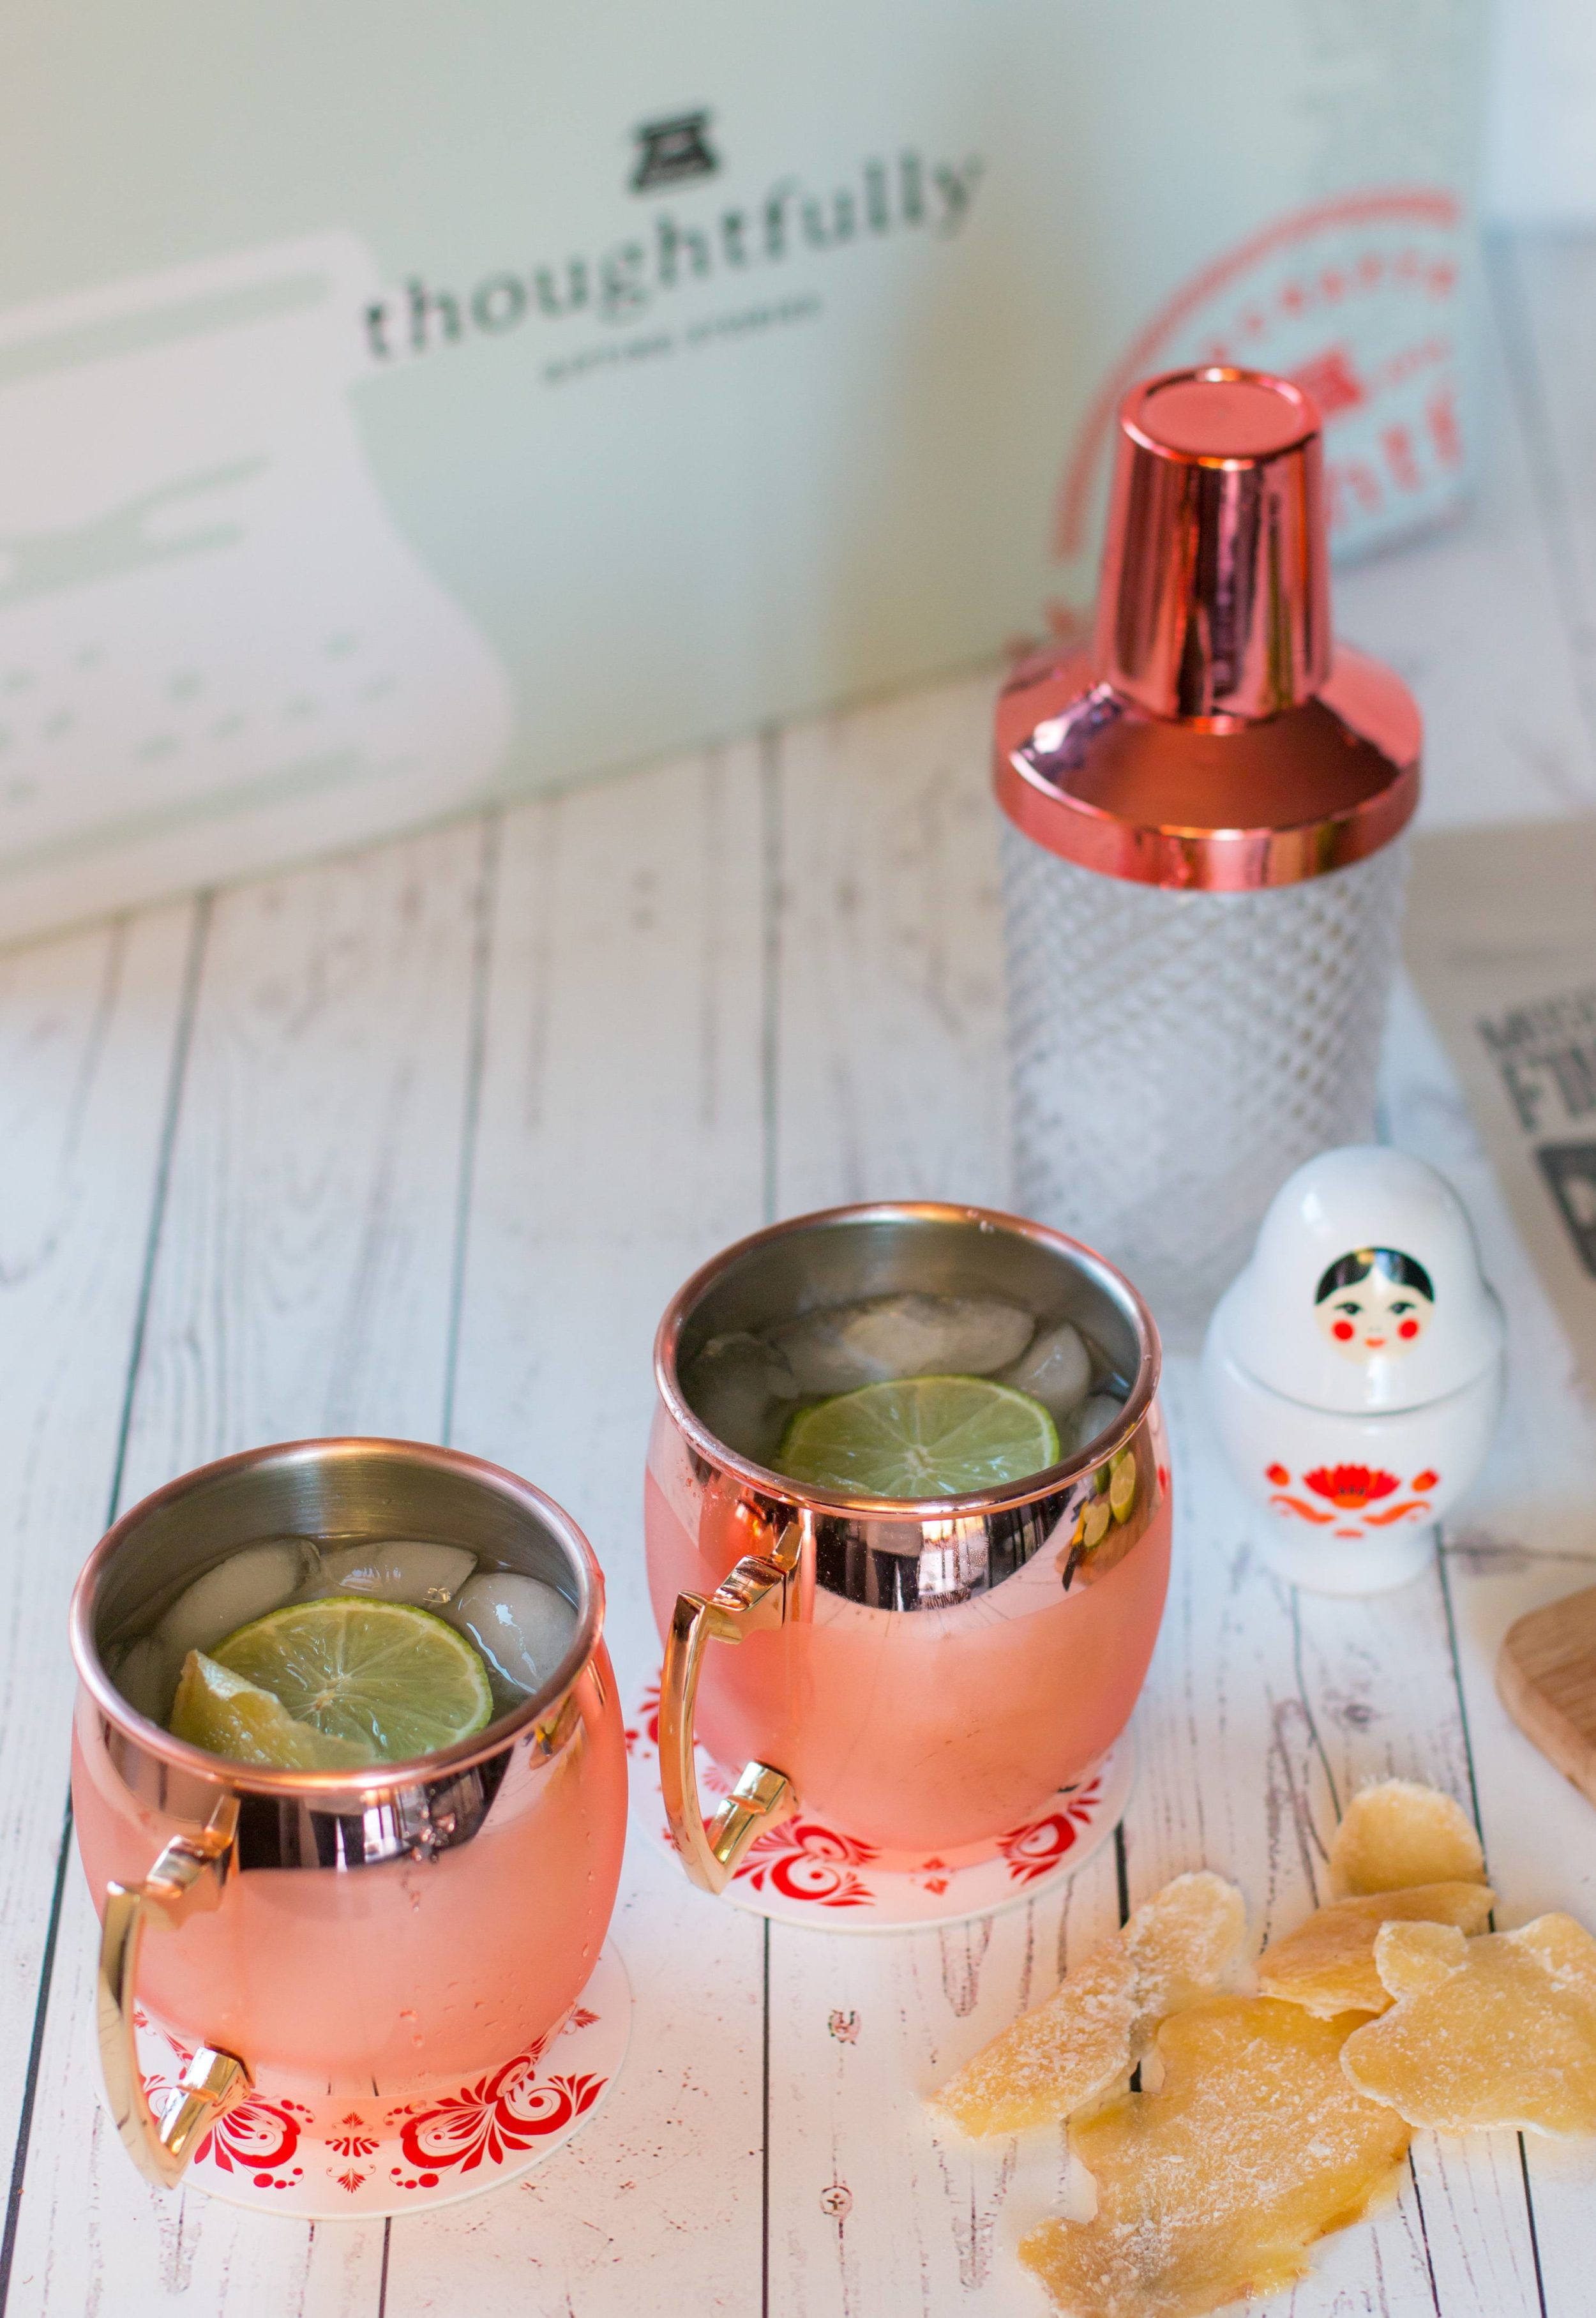 A clever Moscow mule lover's gift set.